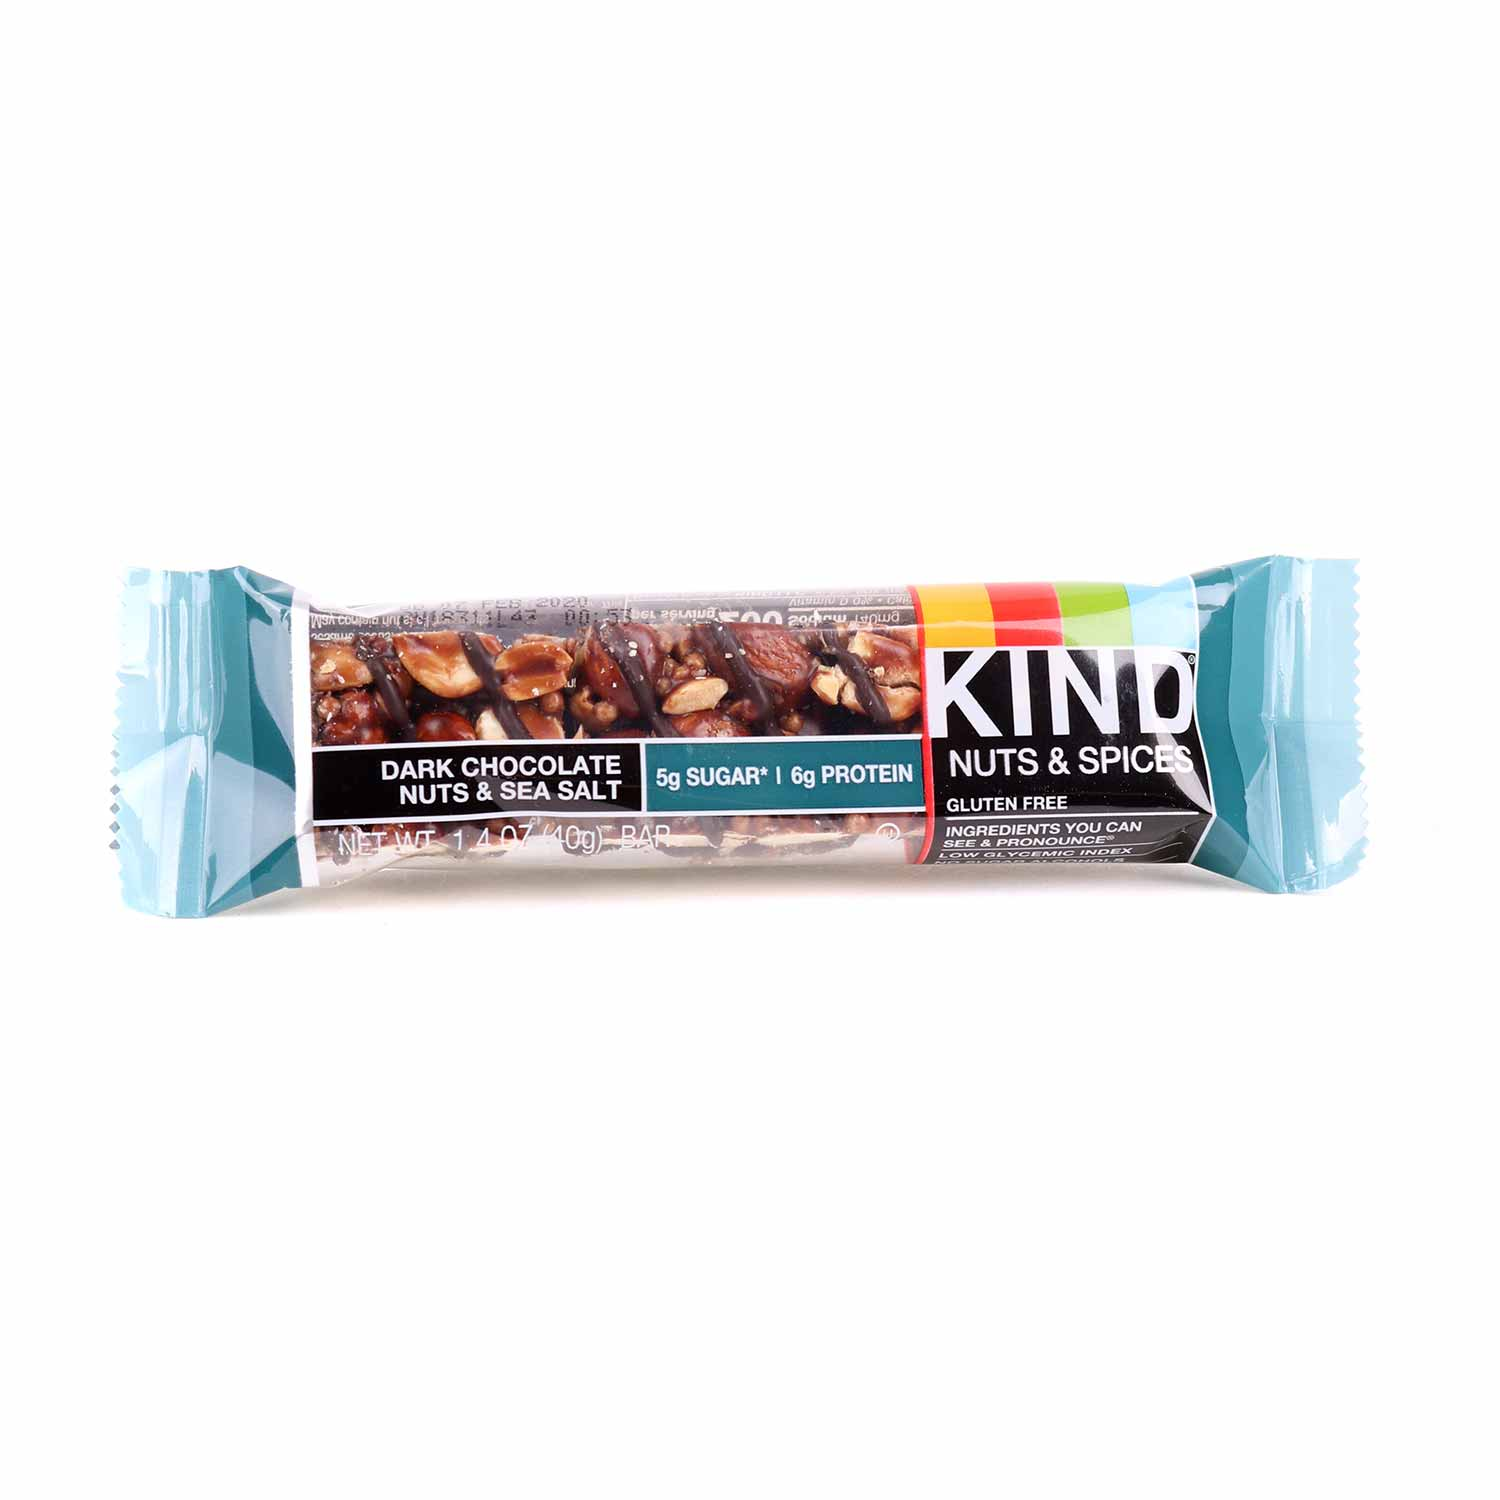 Bar, Dark Chocolate Nuts & Sea Salt